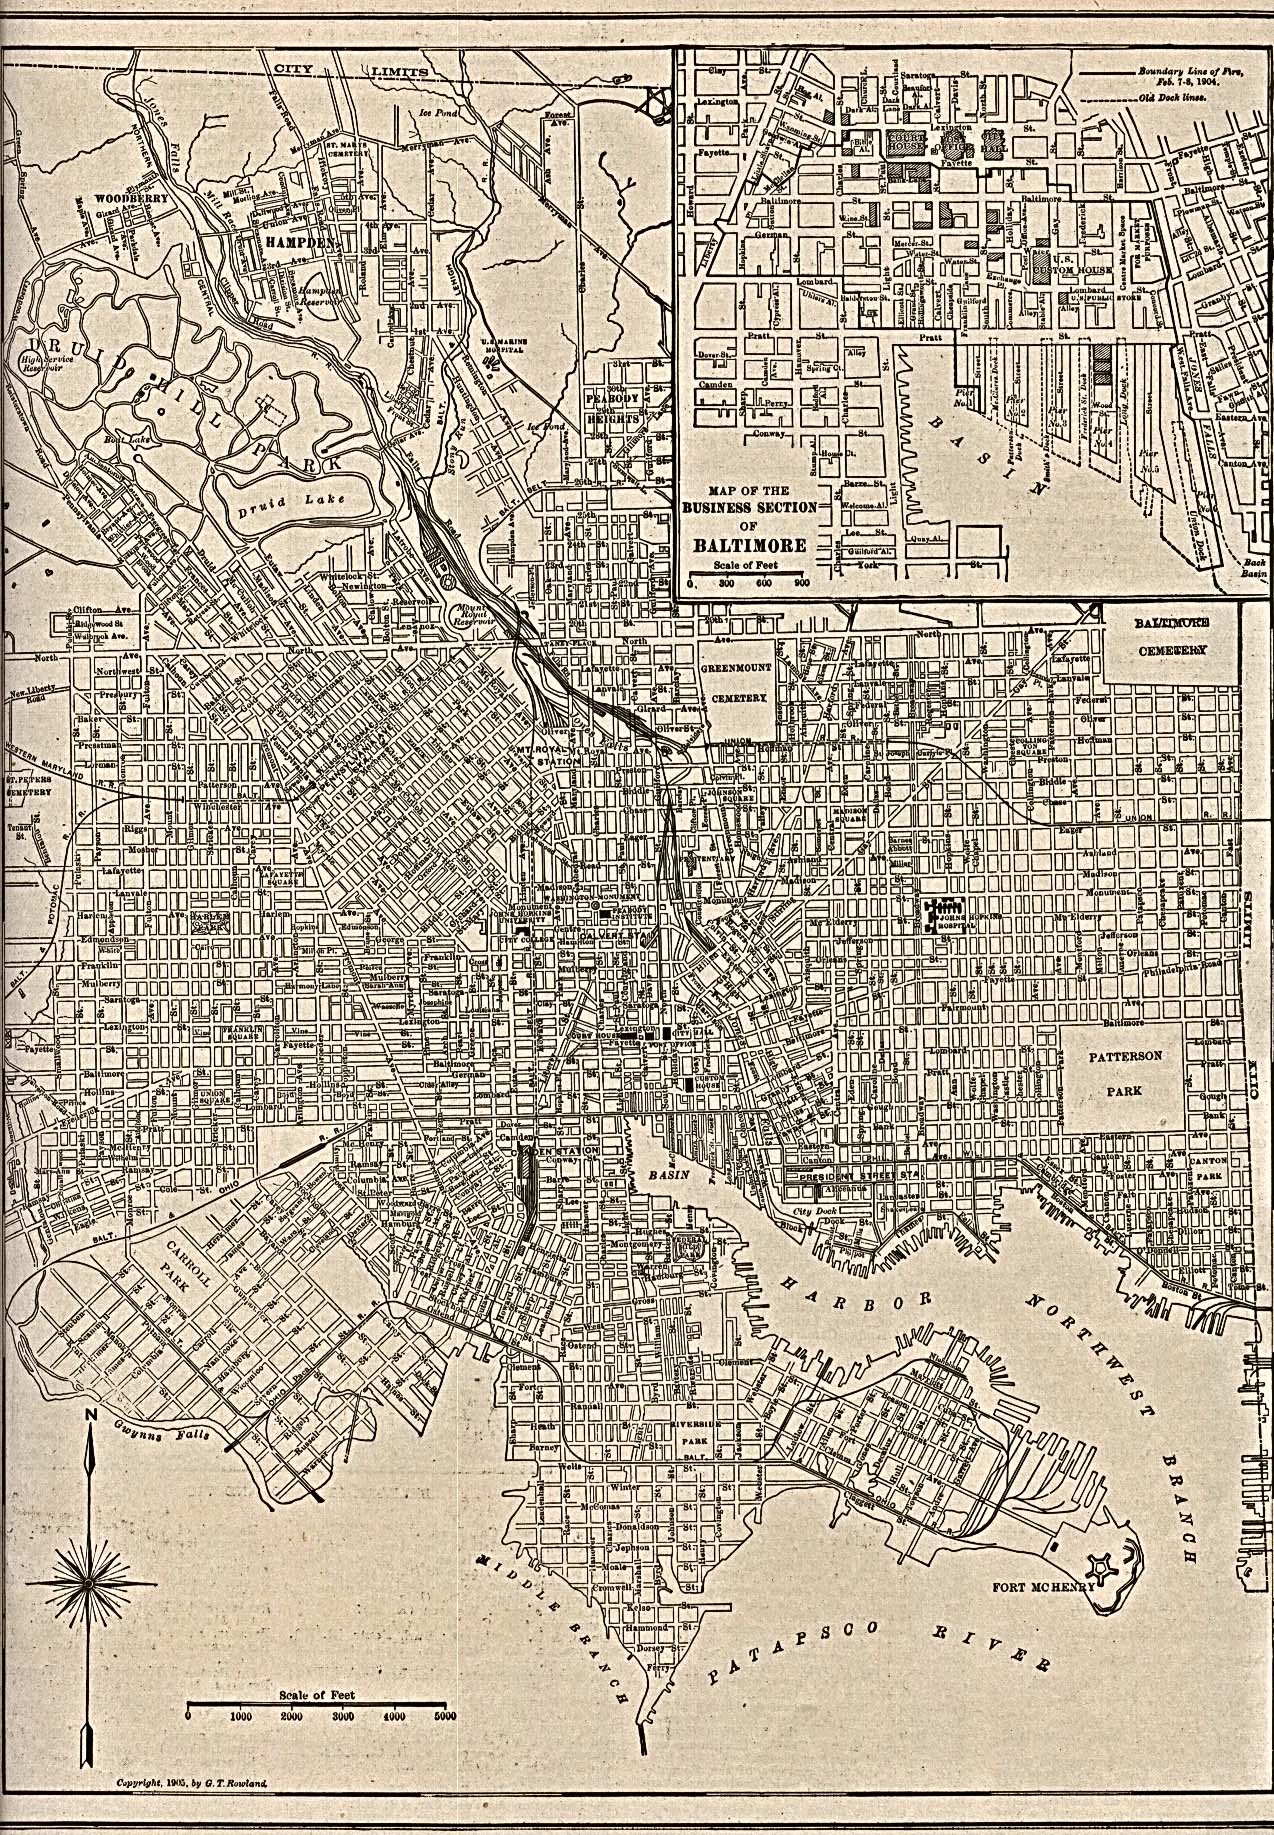 Baltimore City Map, Maryland, United States 1905